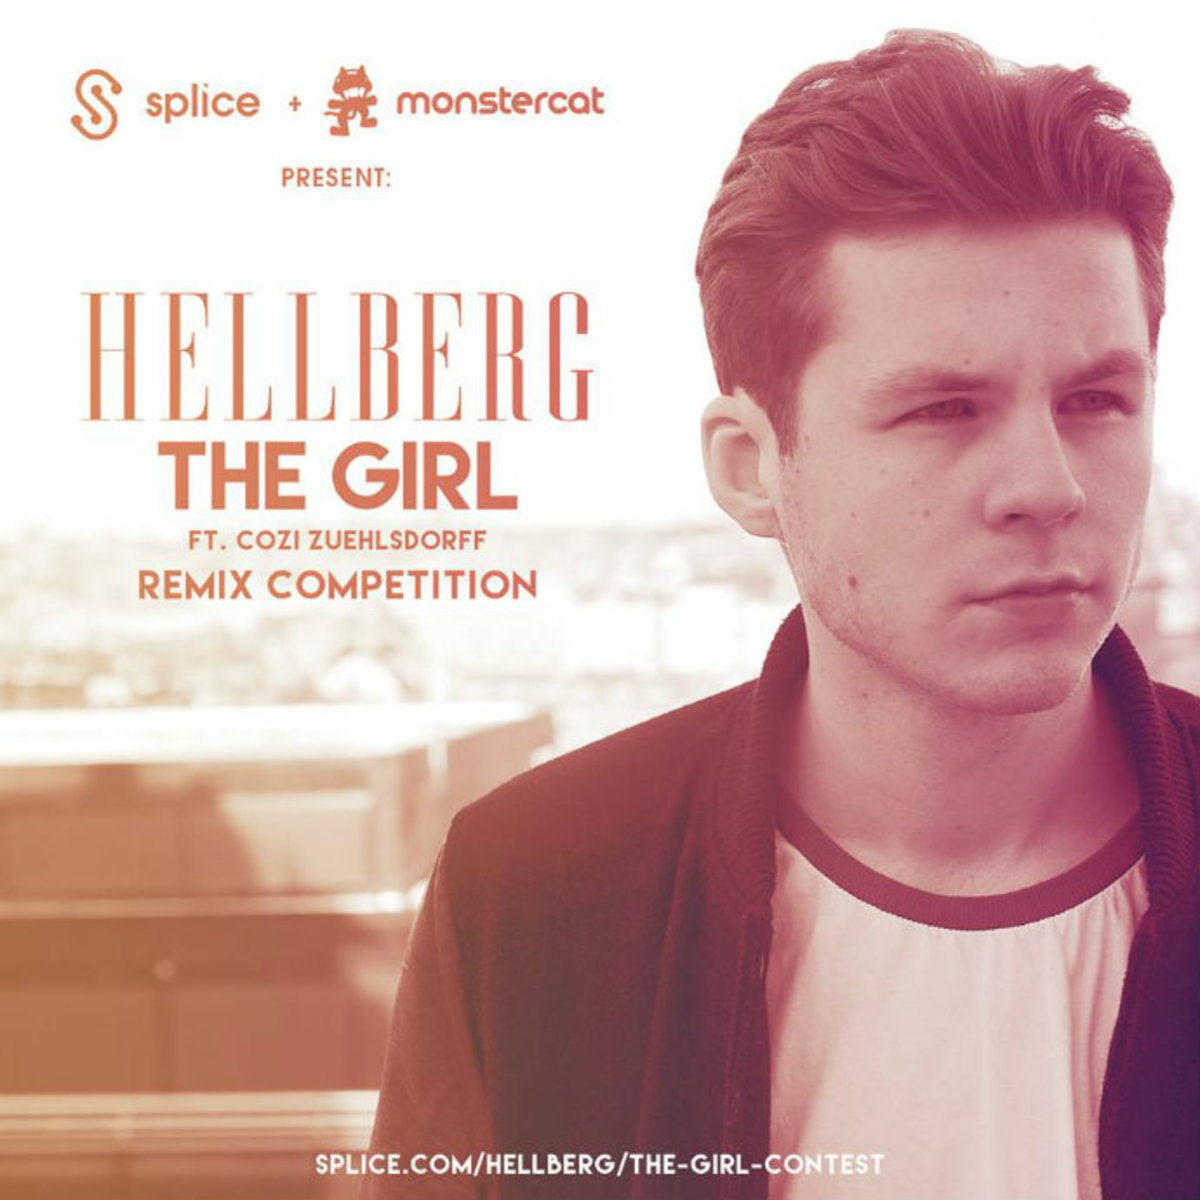 Monstercat Teams Up With Splice And Hellberg For Remix Contest